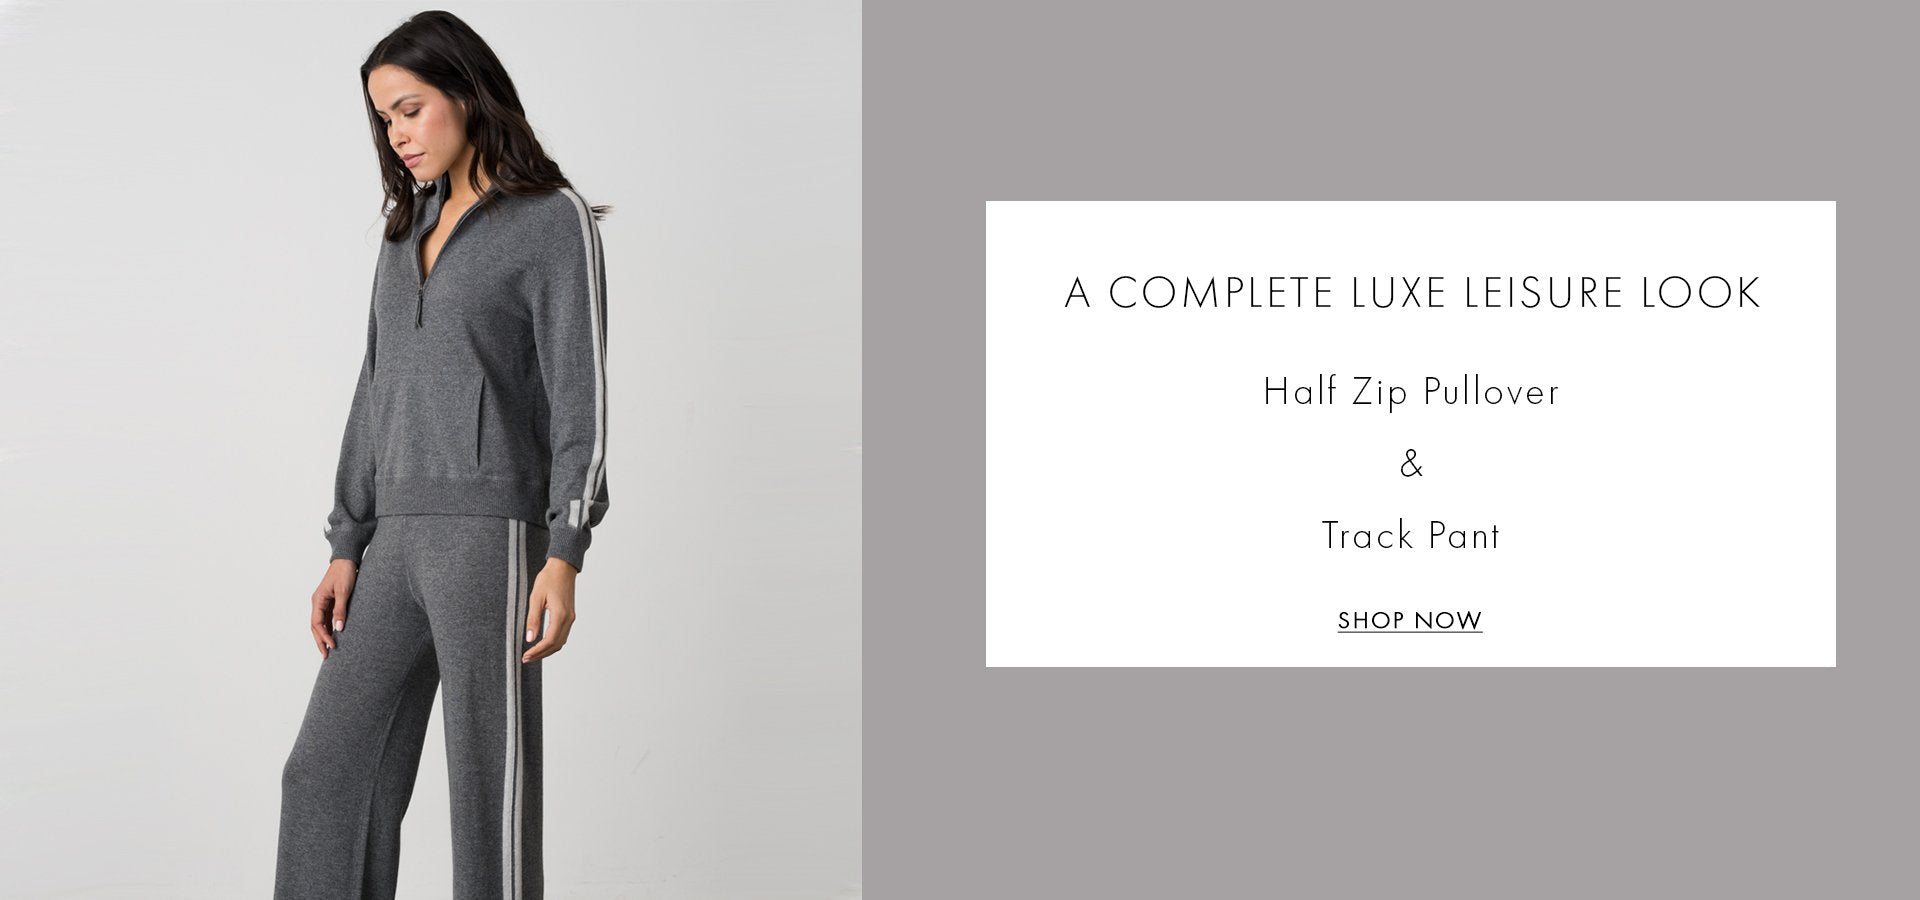 A complete luxe leisure look: half zip pullover and track pant